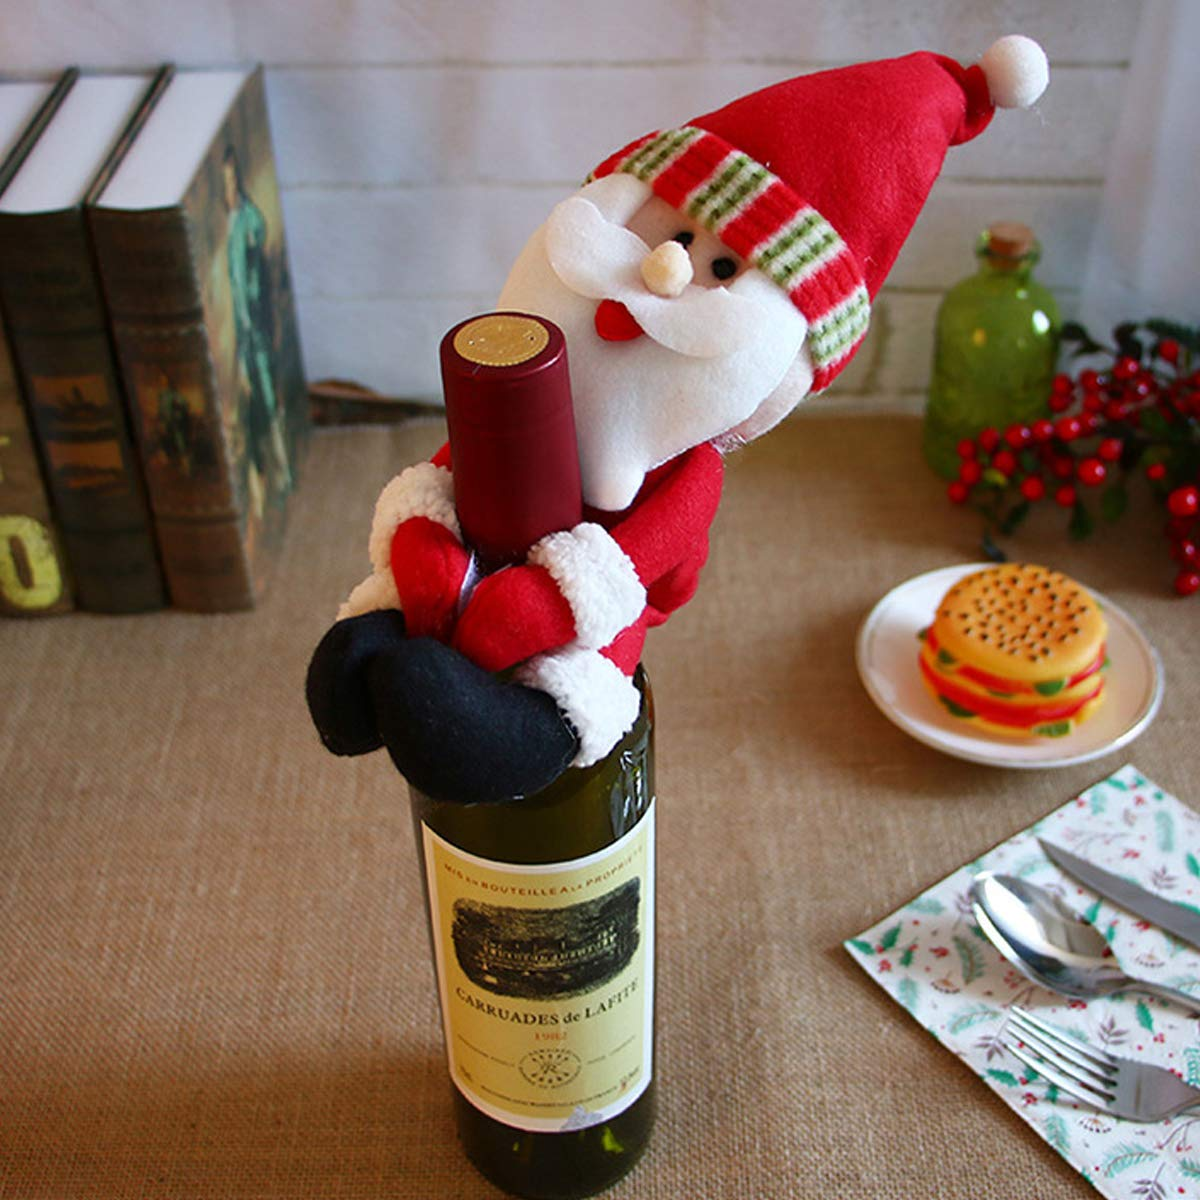 Wine Bottle Covers 1pcs Table Decorations Wine Bottle Cover Ornament Wedding Table Decorations Novelty Decoration Snowman Santa Clause Lovely Hug High Quality Goods Household Merchandises